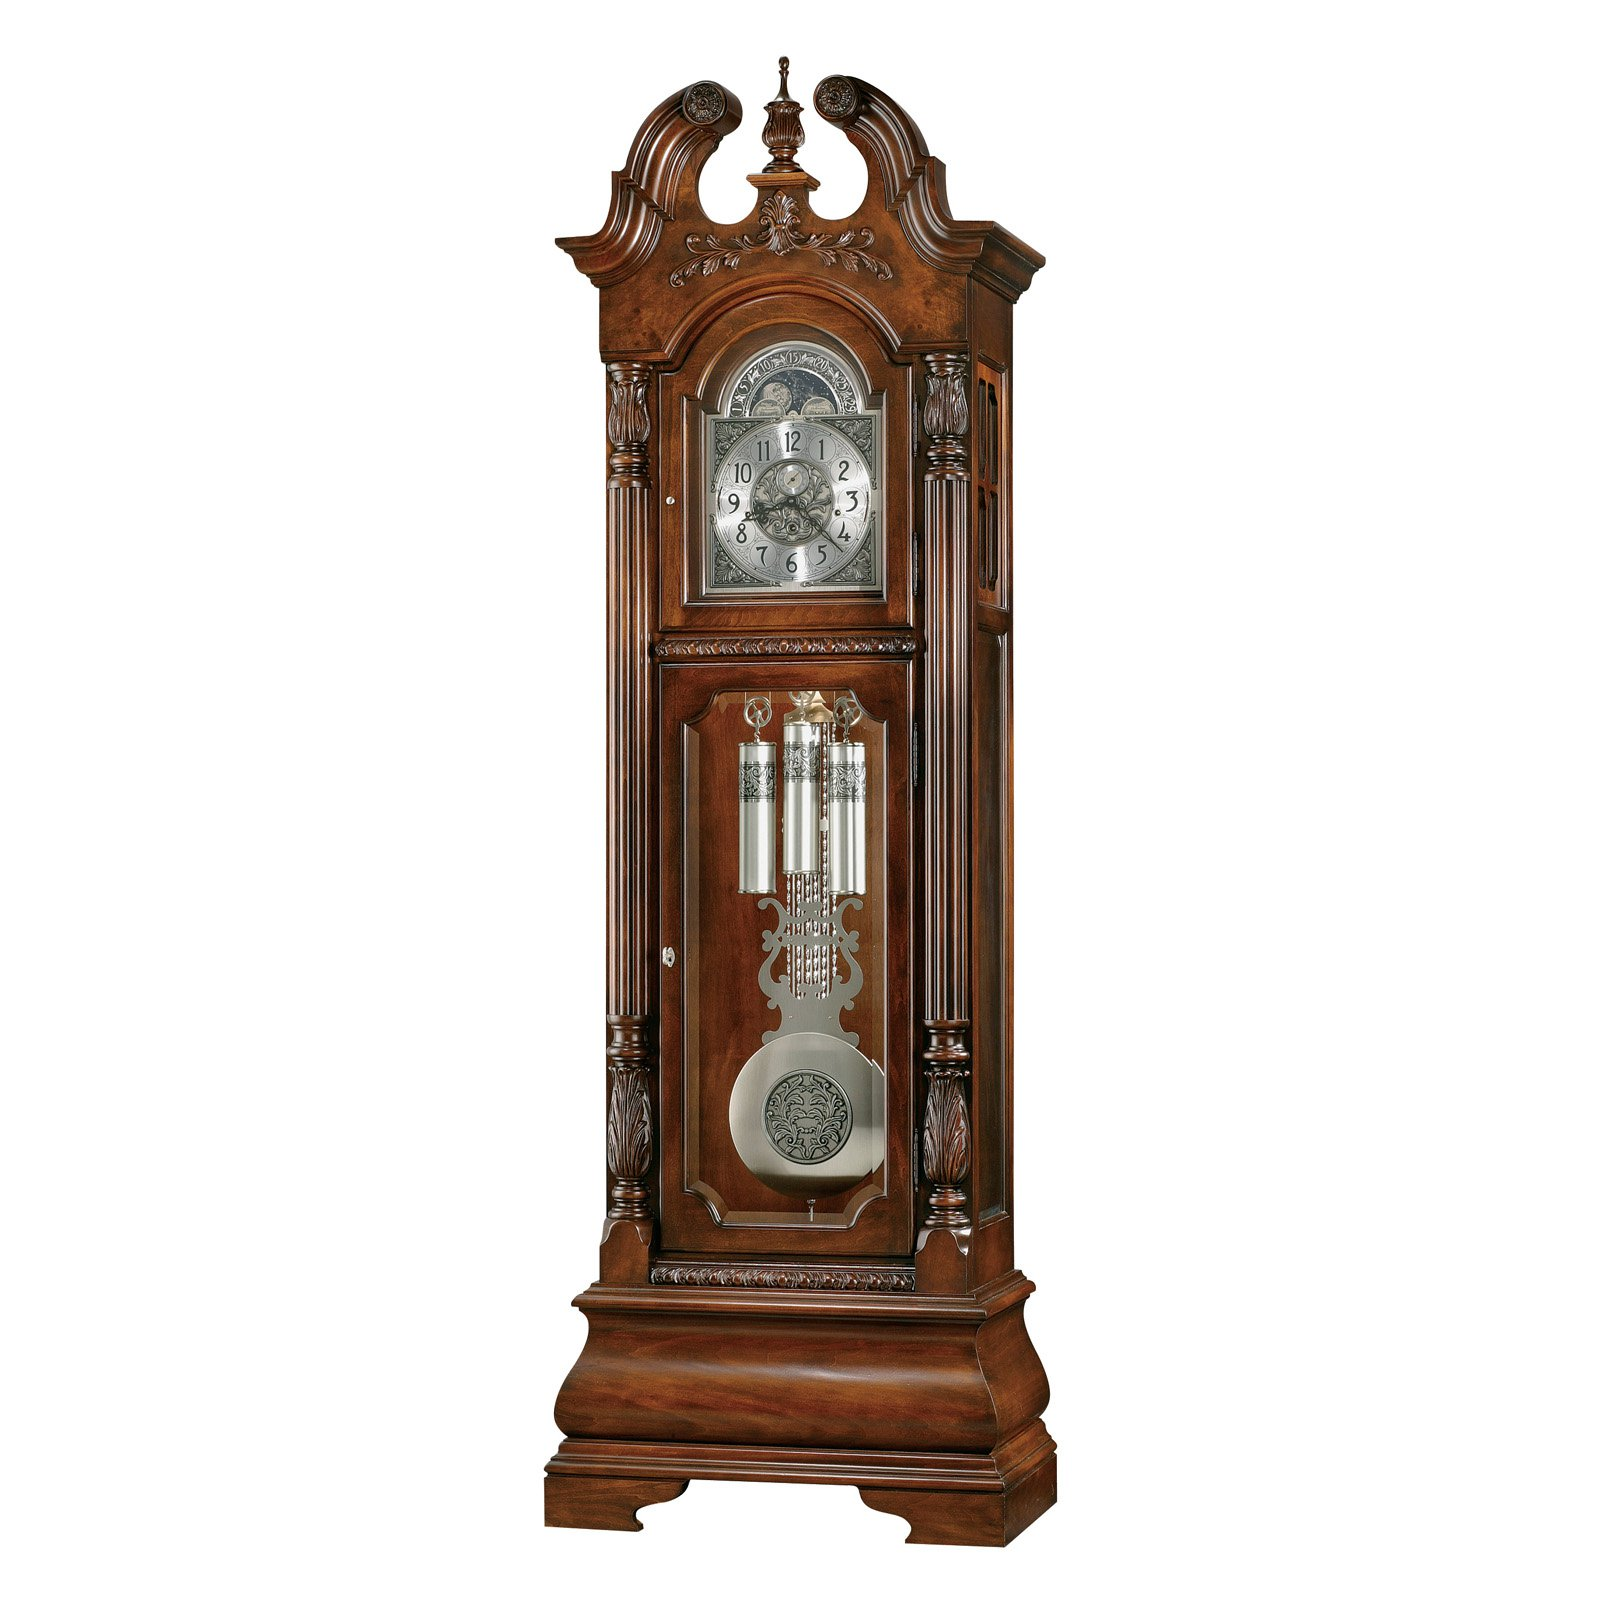 Howard Miller 611-132 Stratford Grandfather Clock by Howard Miller